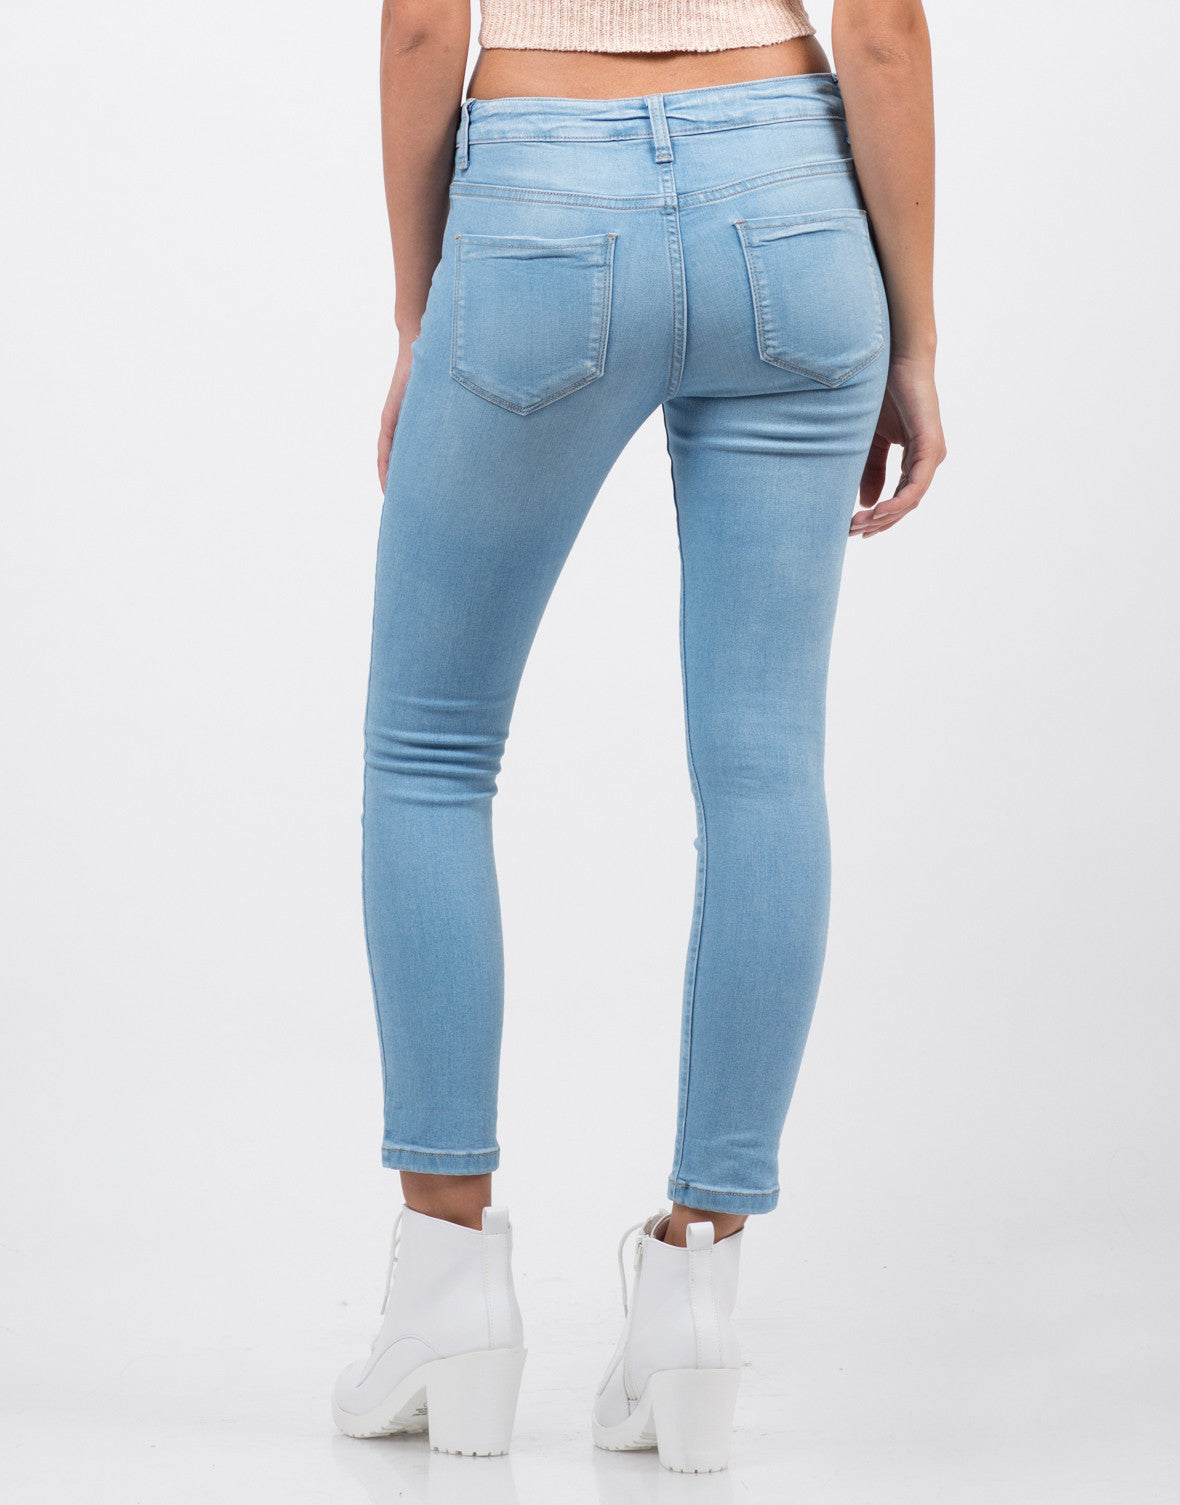 Could be eligible Free Shipping, Denim Jeans Store Canada* Joes Big Girls' Jeans - Light, Denim Jeans Store Canada gusajigadexe.cf is a participant in the Amazon Services LLC Associates Program.